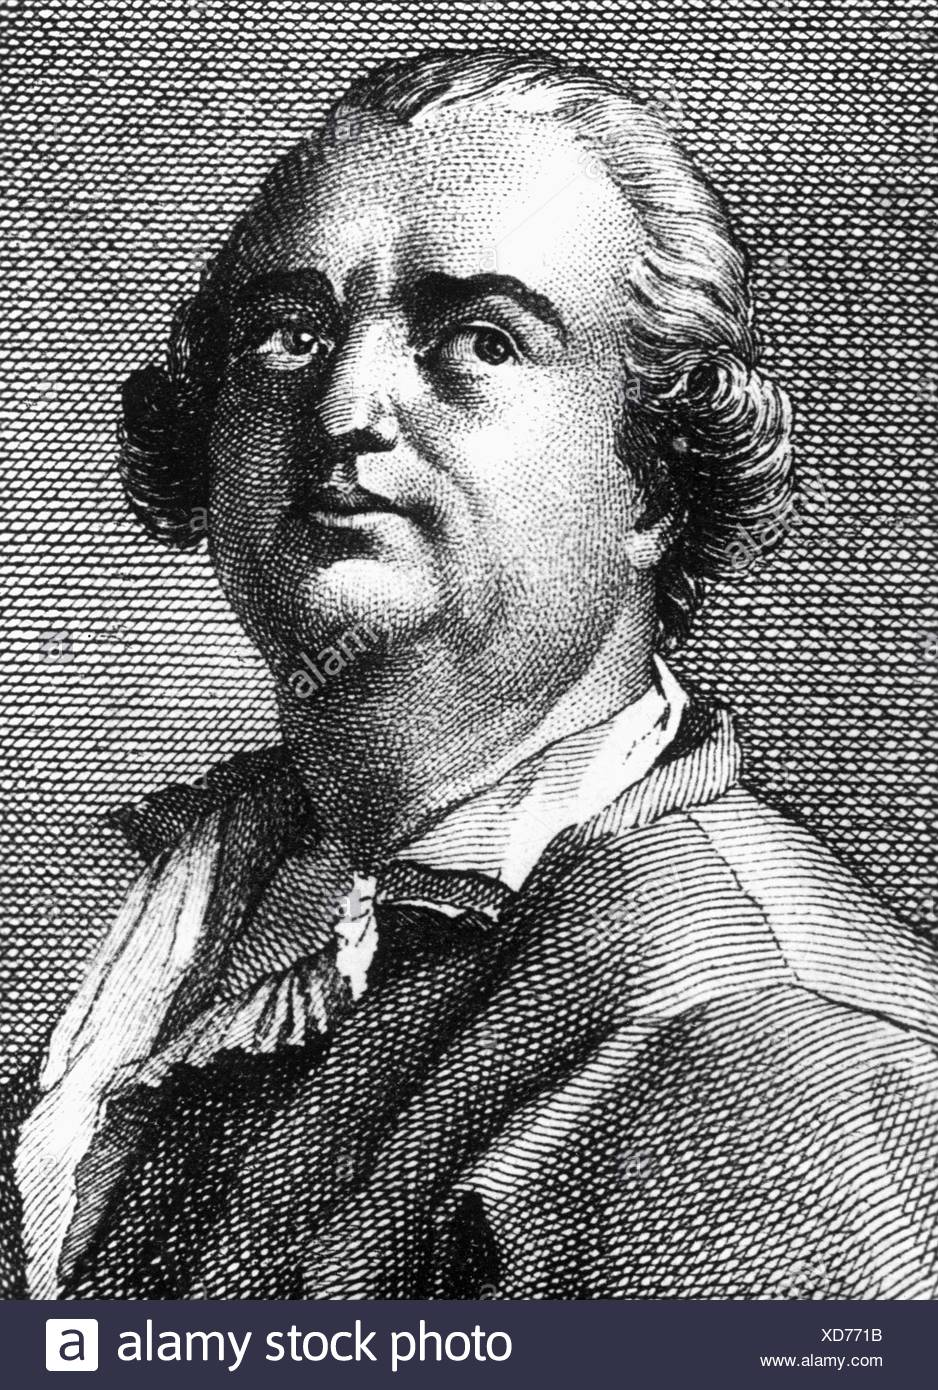 Cagliostro, Count Alessandro, 8.6.1743 - 26.12.1795, Italian adventurer and alchemist, portrait, contemporary copper engraving, detail, Artist's Copyright has not to be cleared - Stock Image